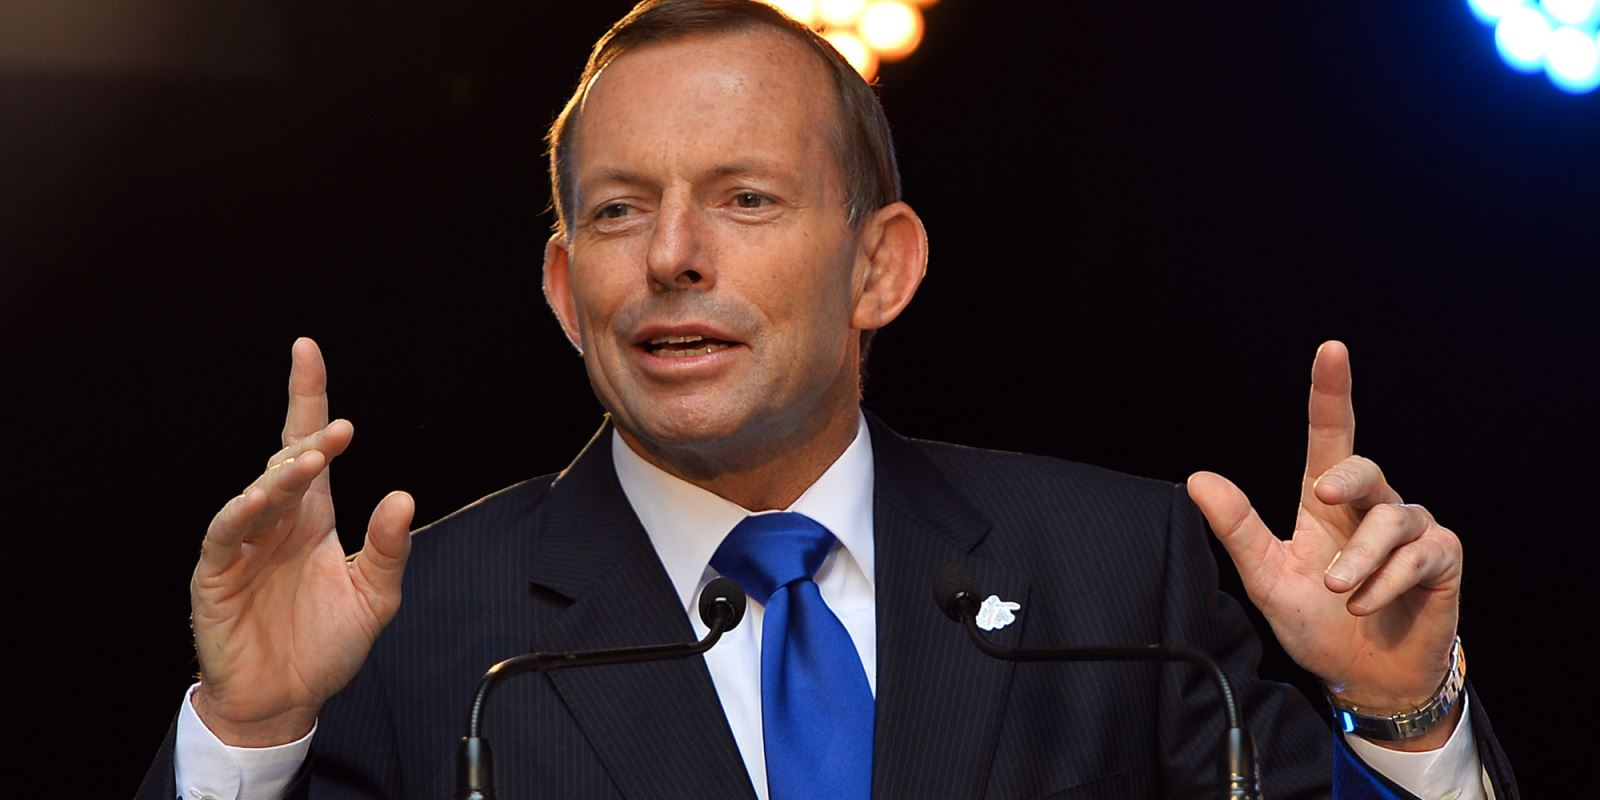 HR reflections on Tony Abbott's undignified departure